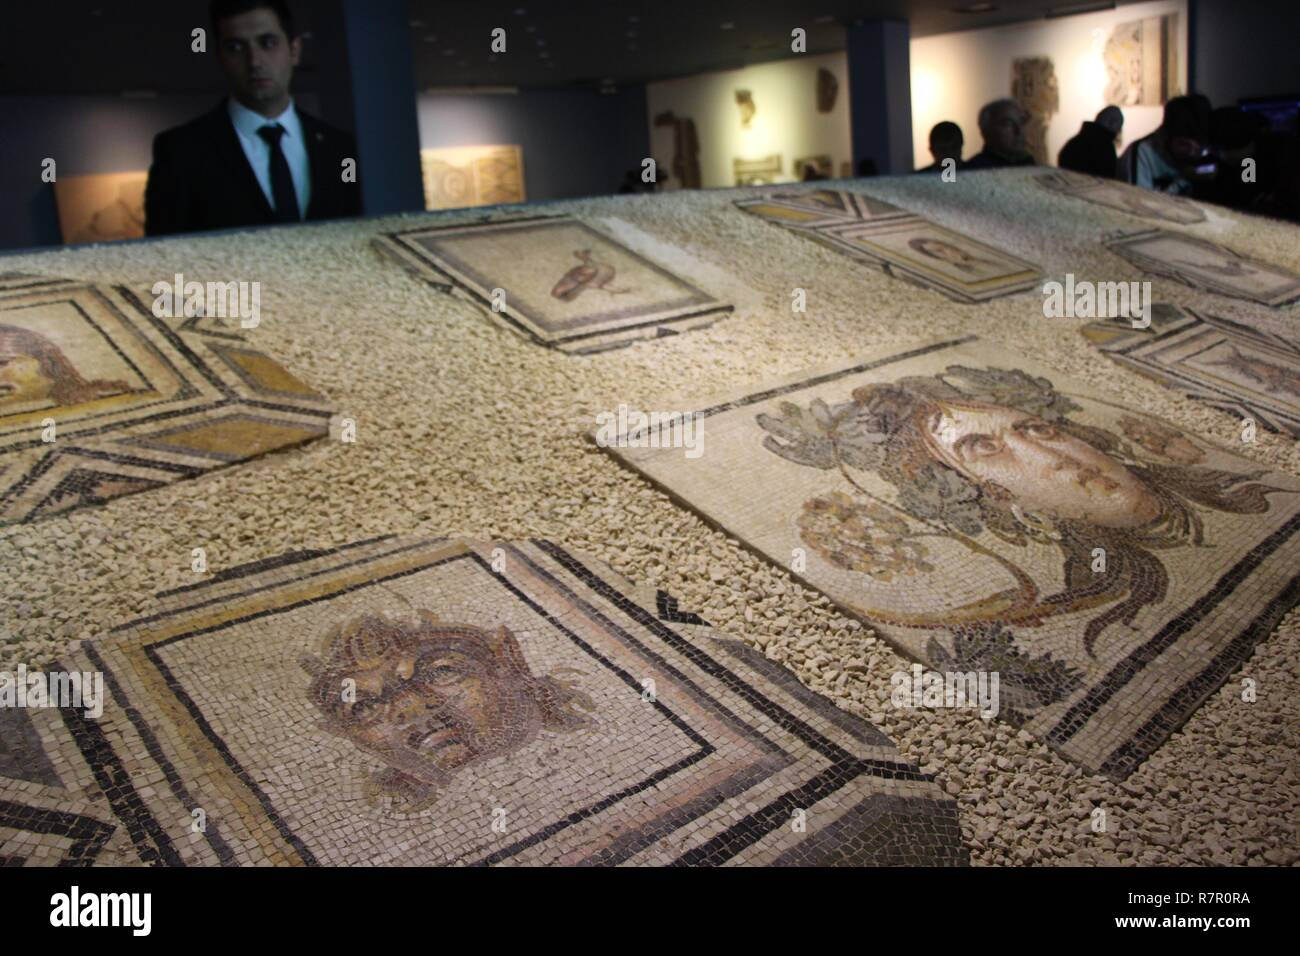 Ankara. 11th Dec, 2018. Photo taken on Dec. 8, 2018 shows fragments of the 'Gypsy Girl' mosaic painting in Gaziantep, southeastern Turkey. Looted and missing pieces of the famous 'Gypsy Girl' mosaic, found in the ancient Roman city of Zeugma which became the symbol of southeastern Turkey's Gaziantep, returned to Turkey recently from the United States after years of diplomatic efforts. Credit: Xinhua/Alamy Live News - Stock Image